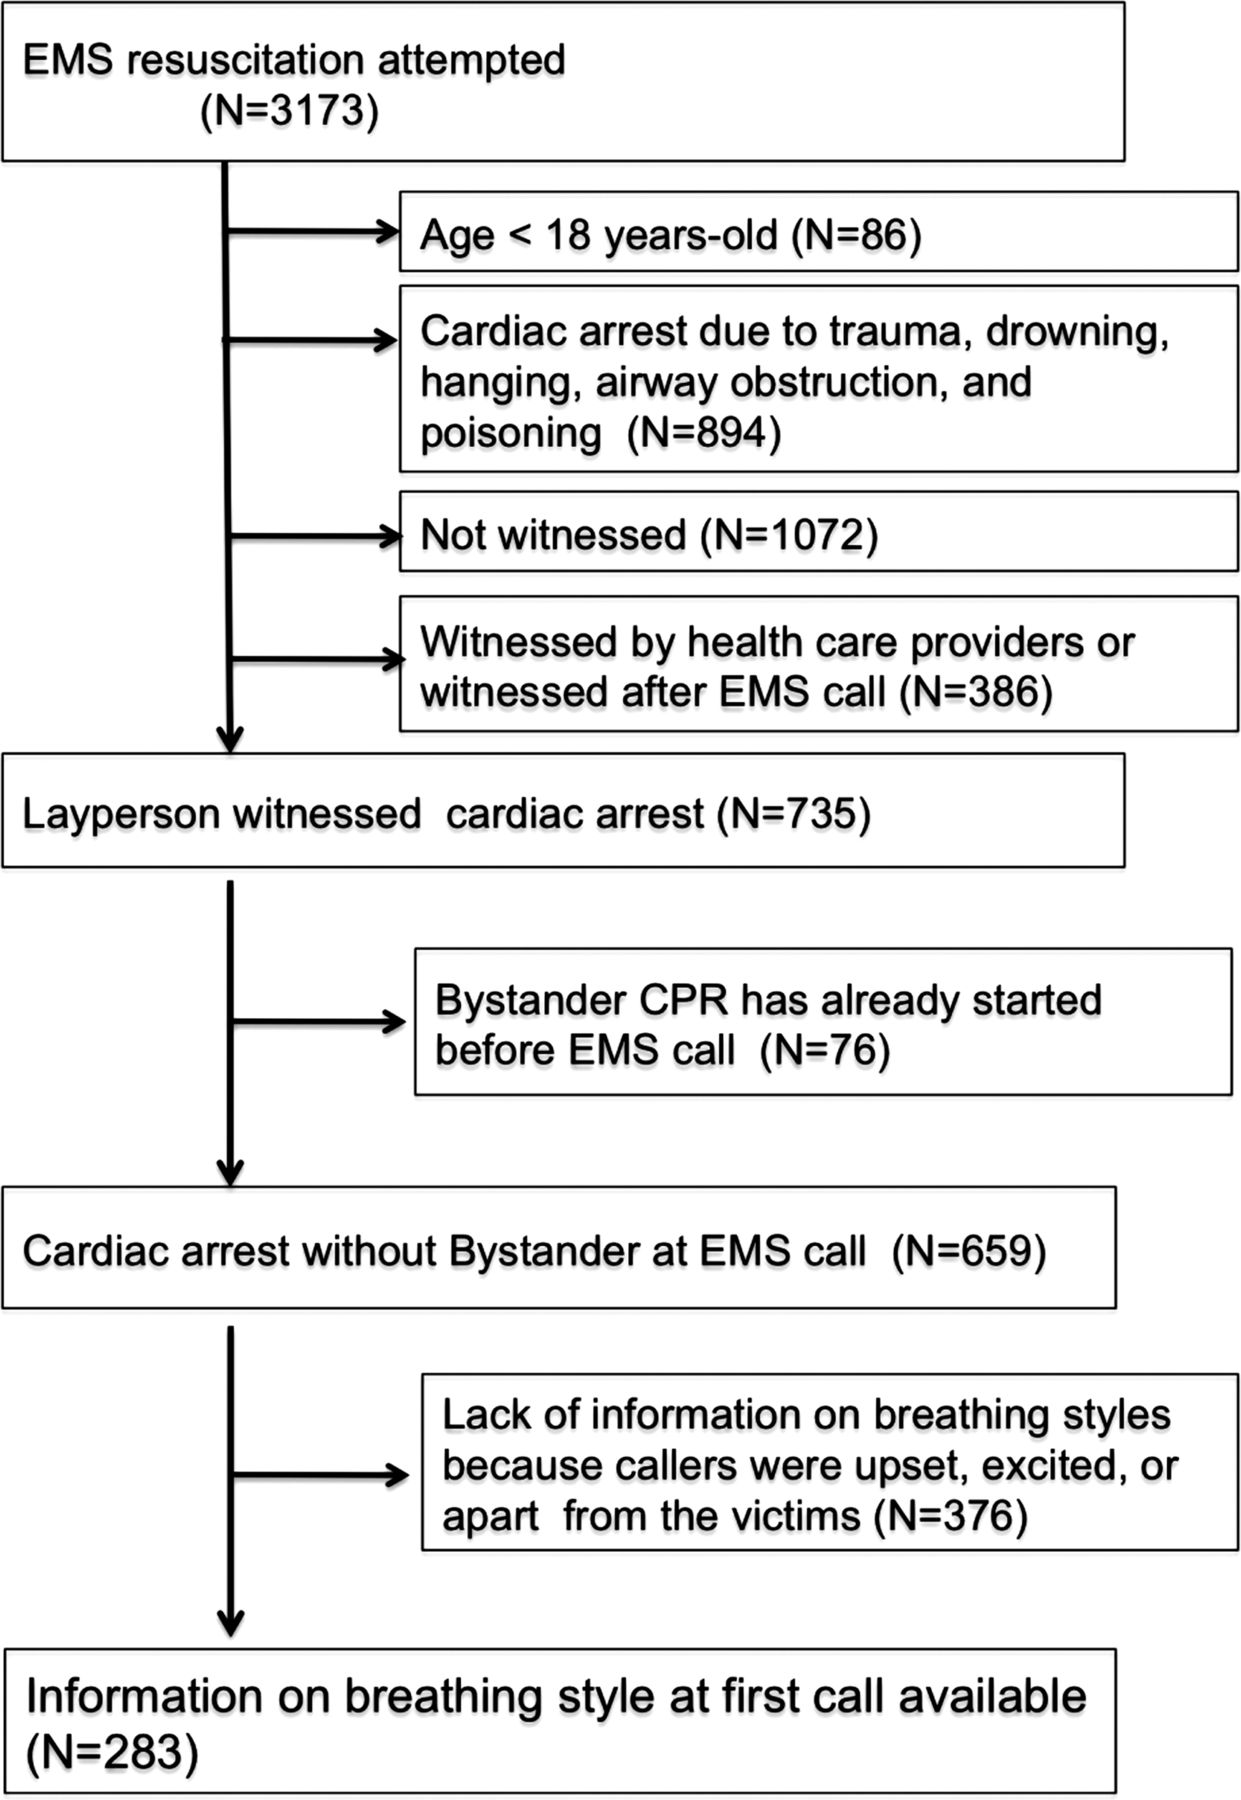 Abnormal breathing of sudden cardiac arrest victims described by